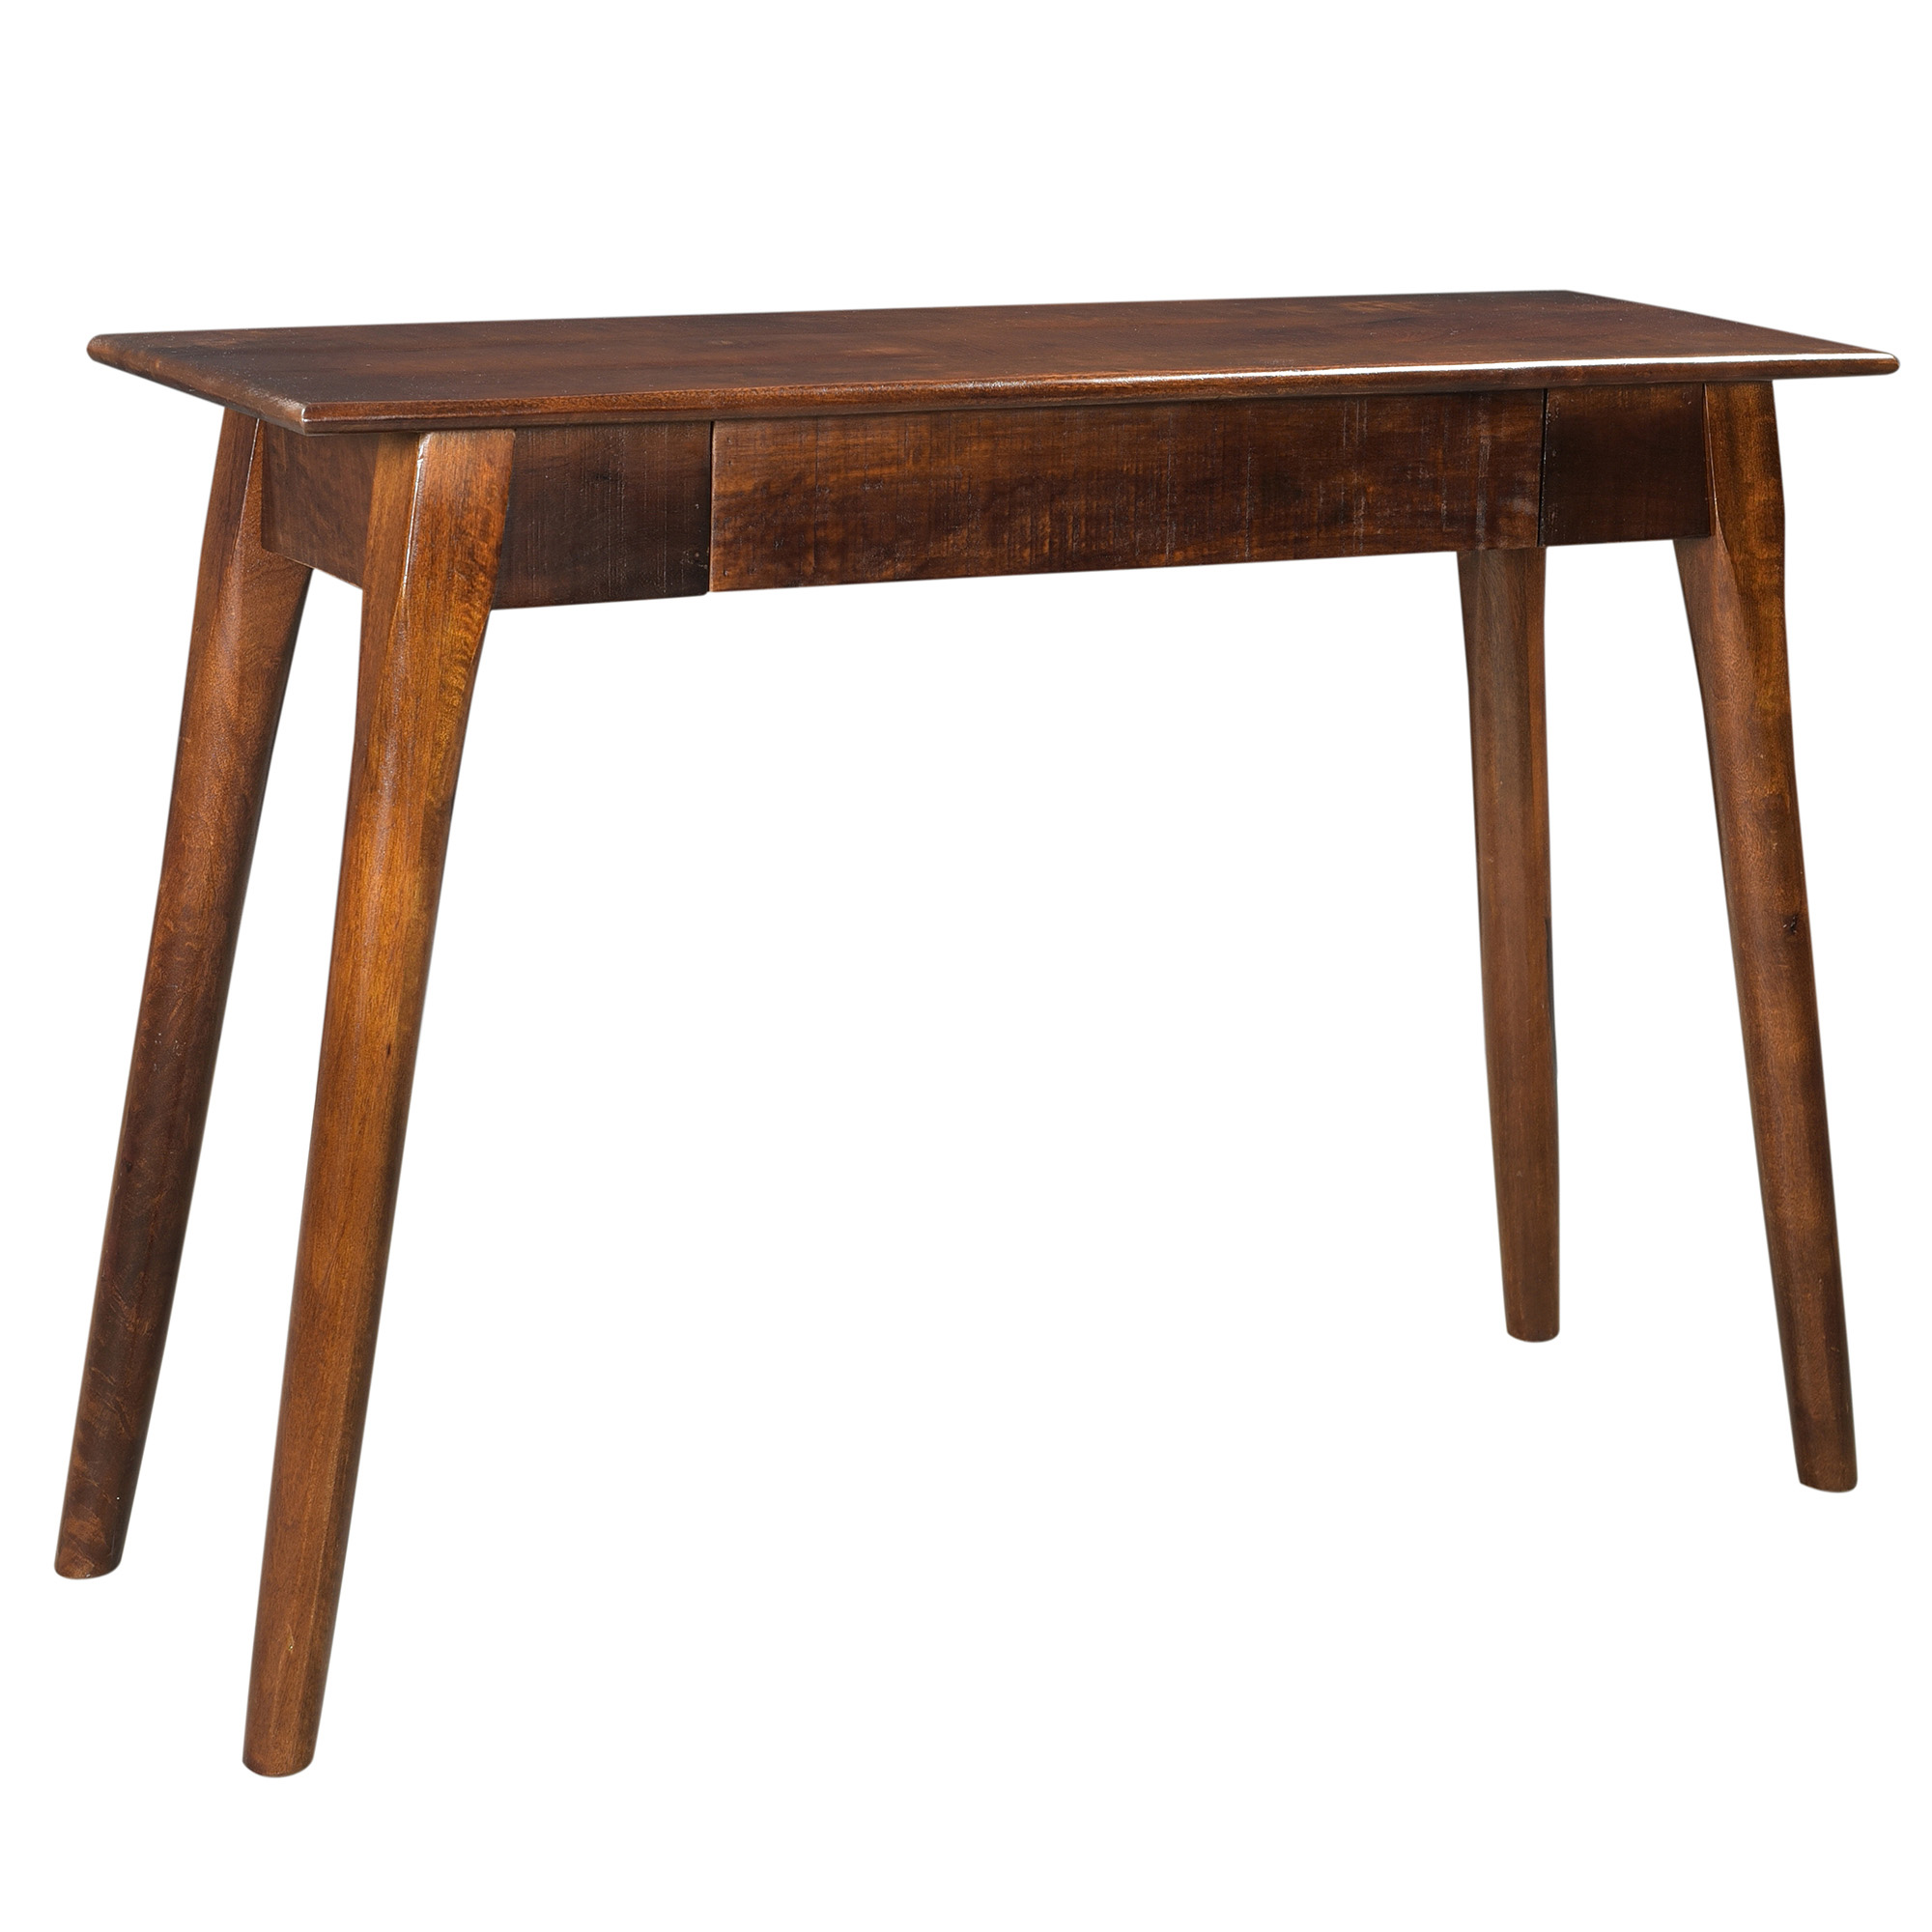 Rustic Modern Solid Wood Console/Desk in Walnut